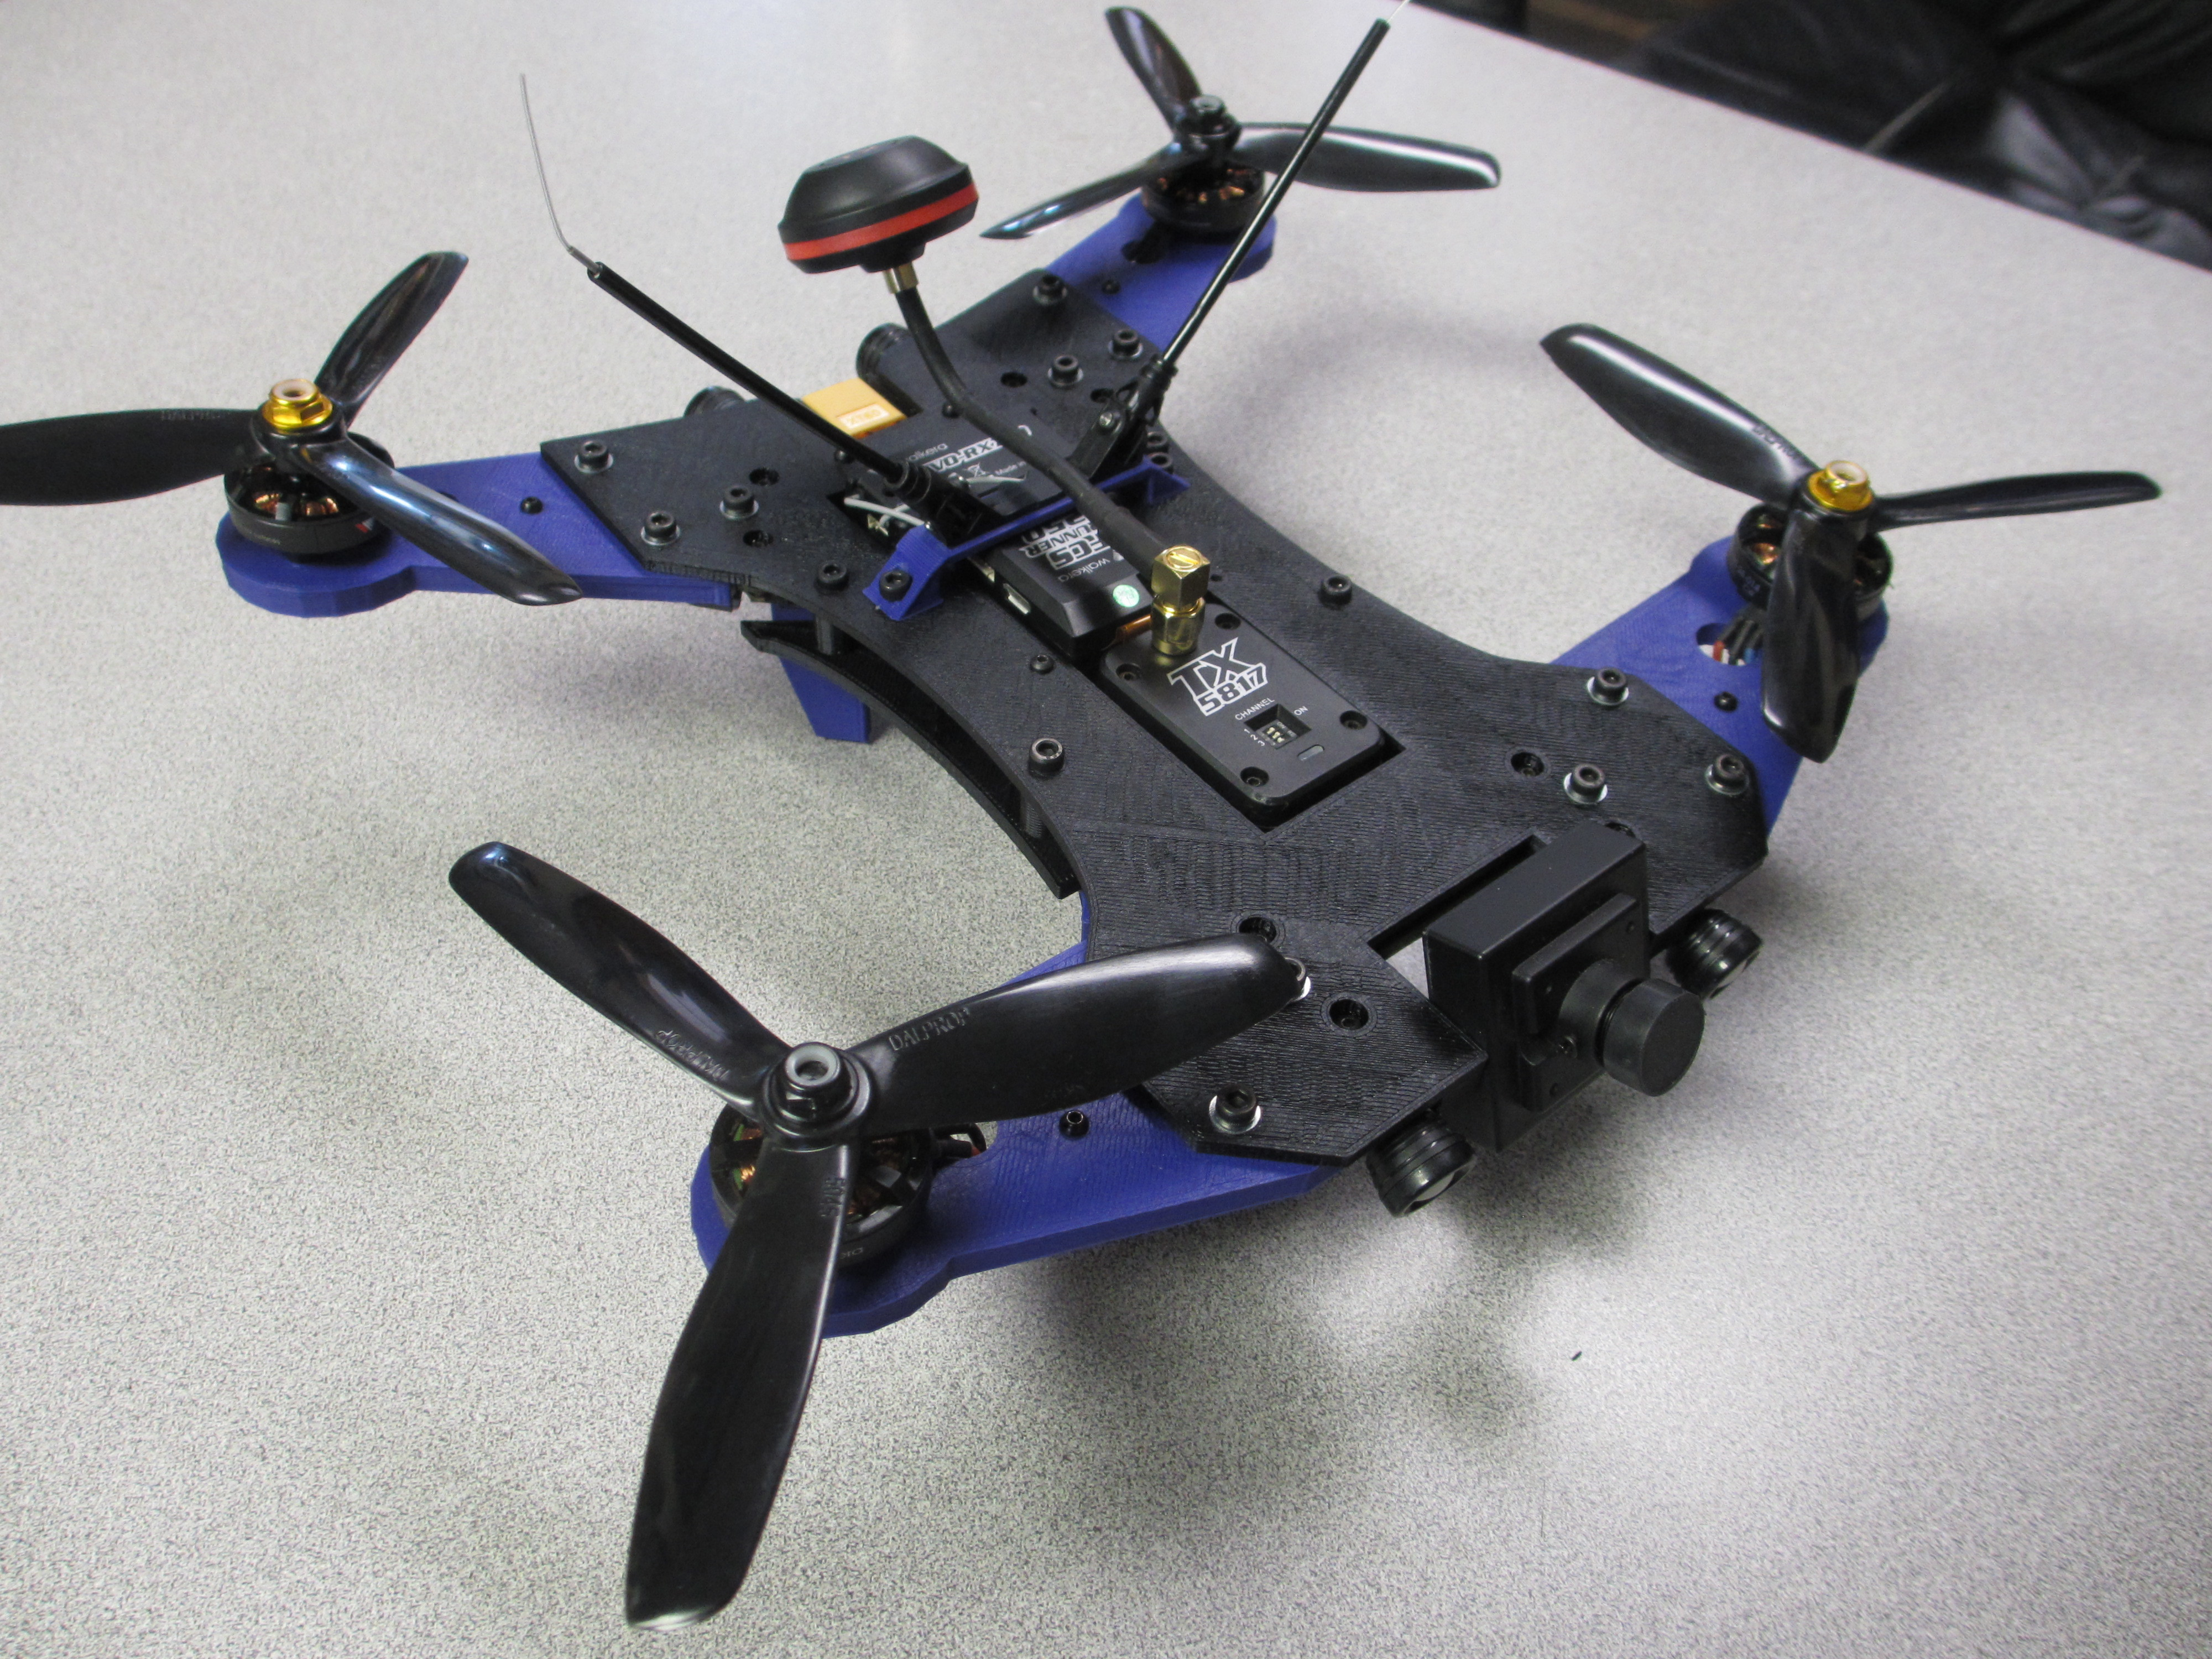 picture regarding 3d Printable Drone referred to as Walkera Runner 250 Racing Drone Complete Body/ S Variation 2 @ Pinshape